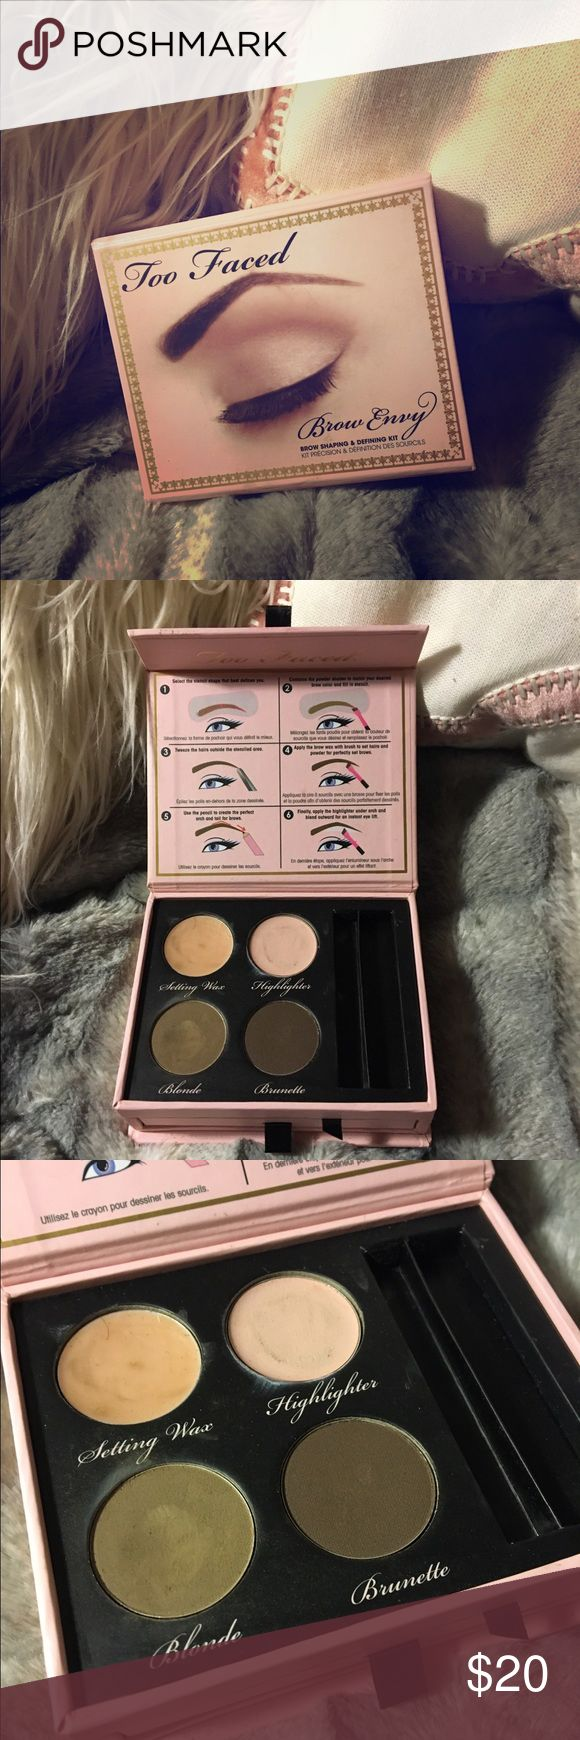 Too Faced Brow Envy brow shaping& defining kit It has been used, but with brushes so it's perfectly clean, I do not have the brushes anymore, are used like a slight lipstick brush or an eyeliner brush to do it. I only used it twice so it's only a little bit uses Too Faced Makeup Eyebrow Filler